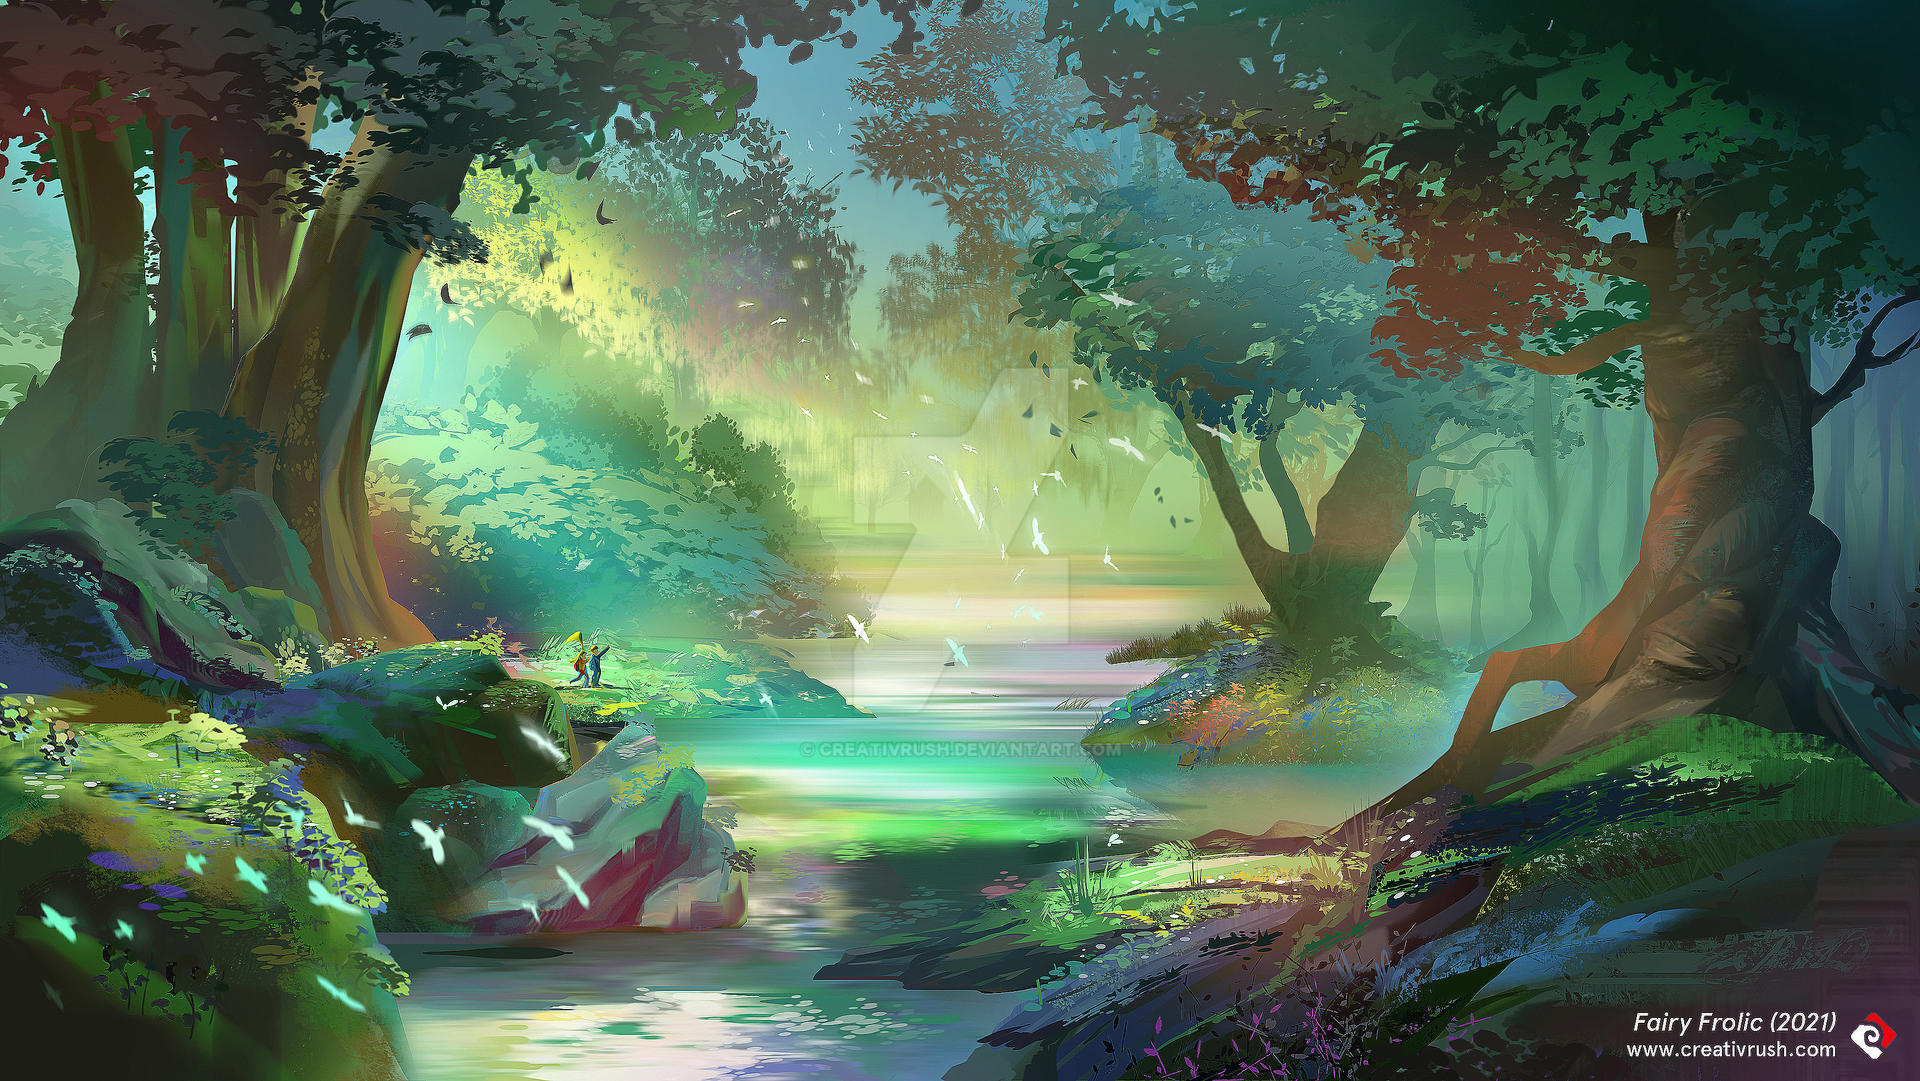 Fairy Frolic - Viewscapes